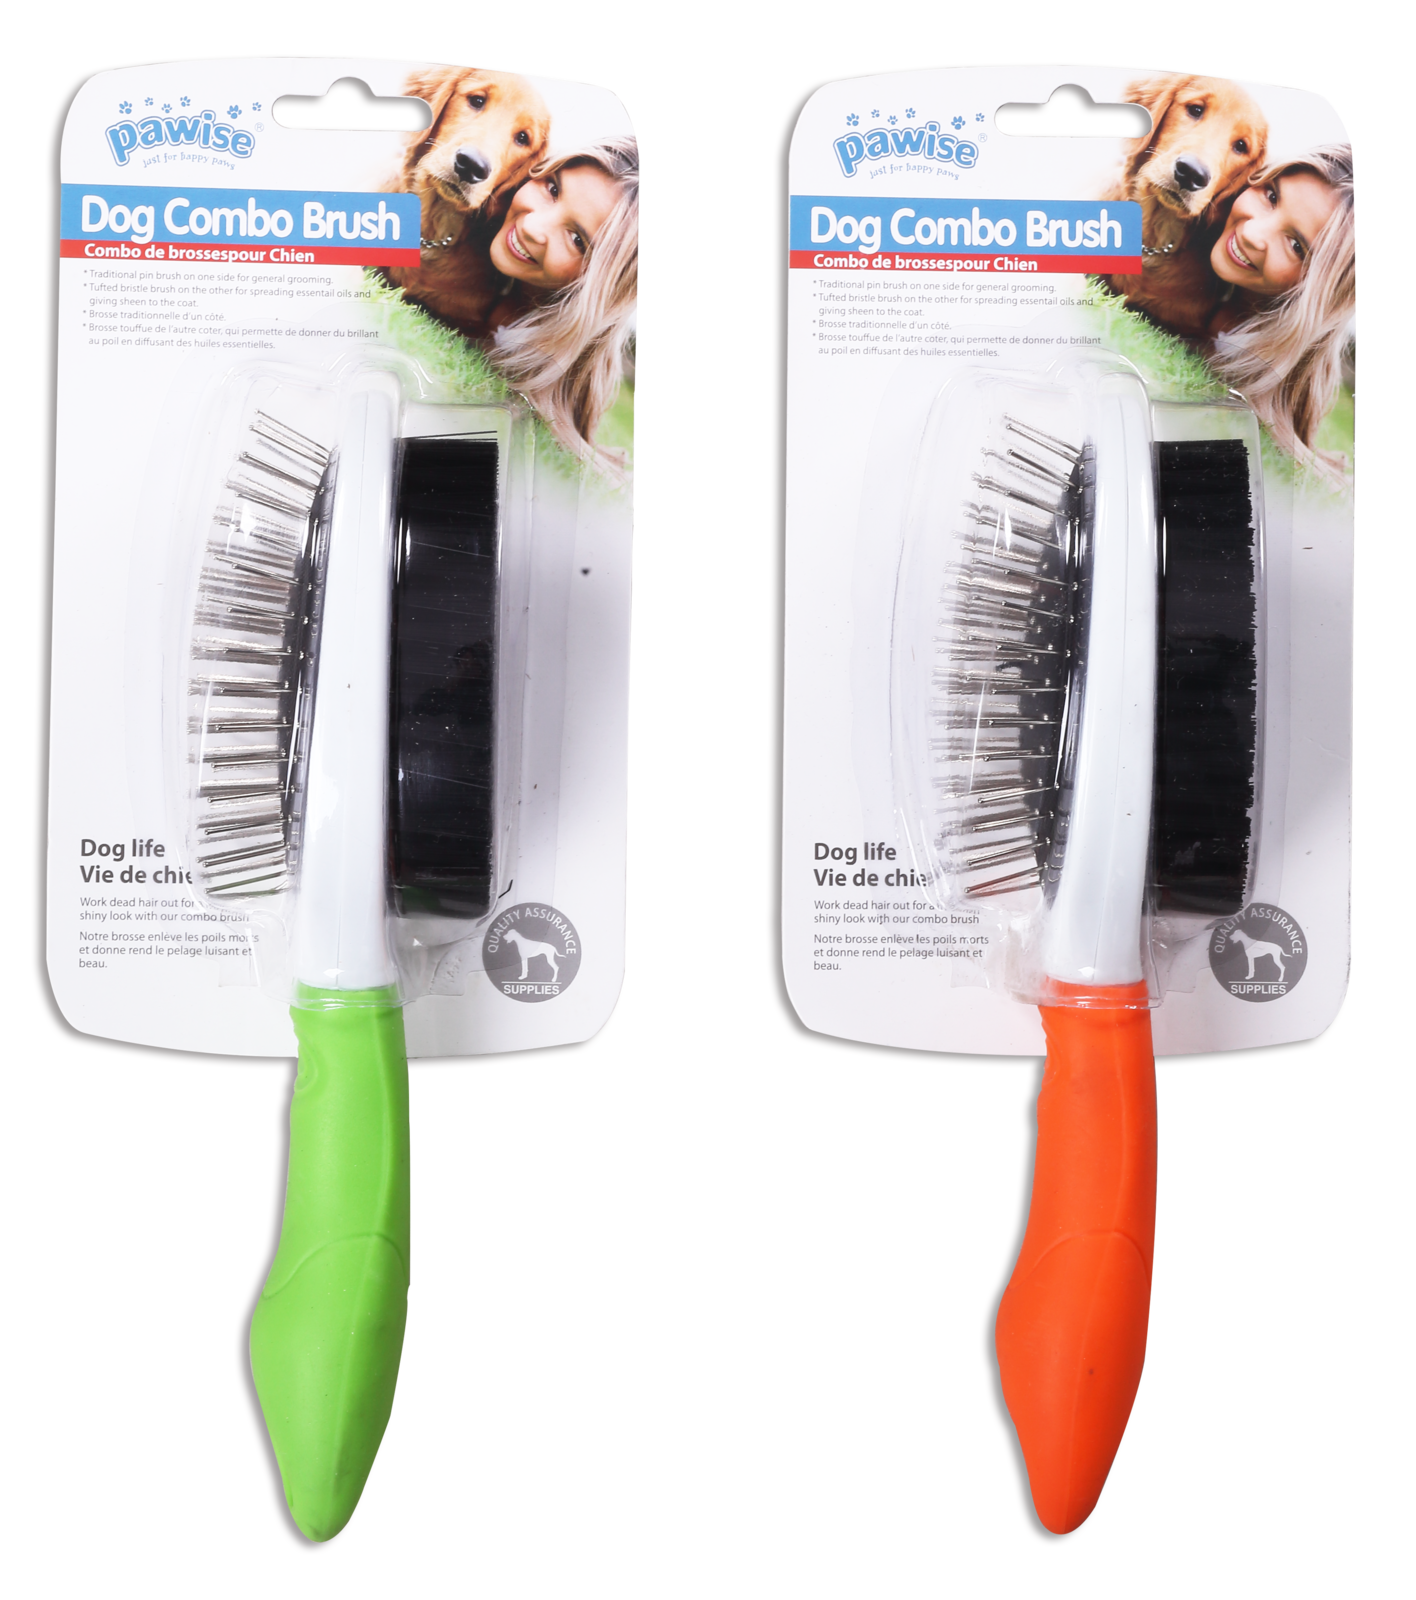 Pawise: Dog Double Brush - 23.5x6.5 cm image